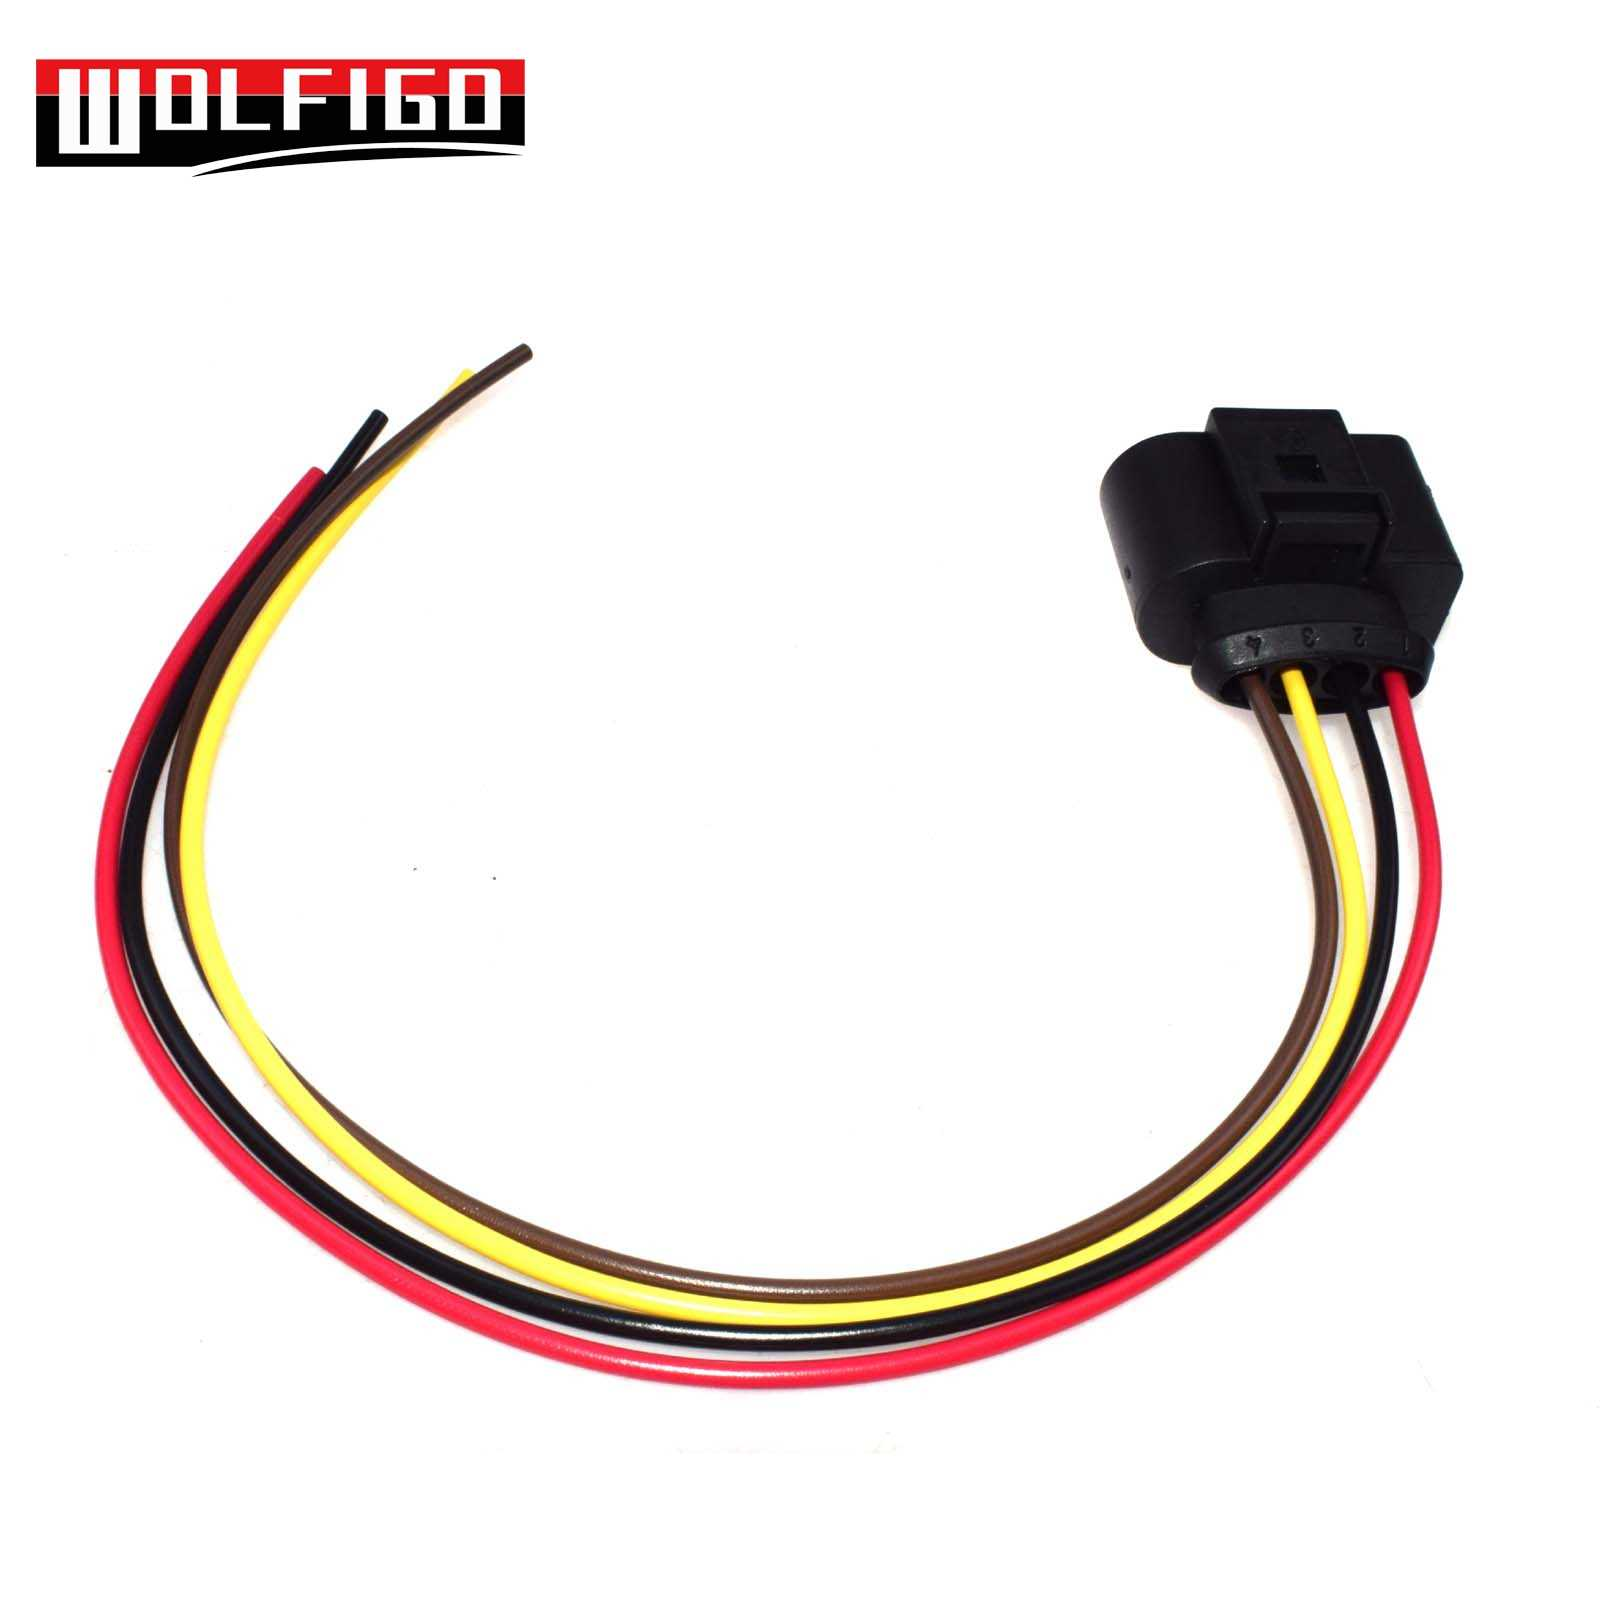 small resolution of  wolfigo new ignition coil connector repair kit harness plug wiring for audi vw skoda